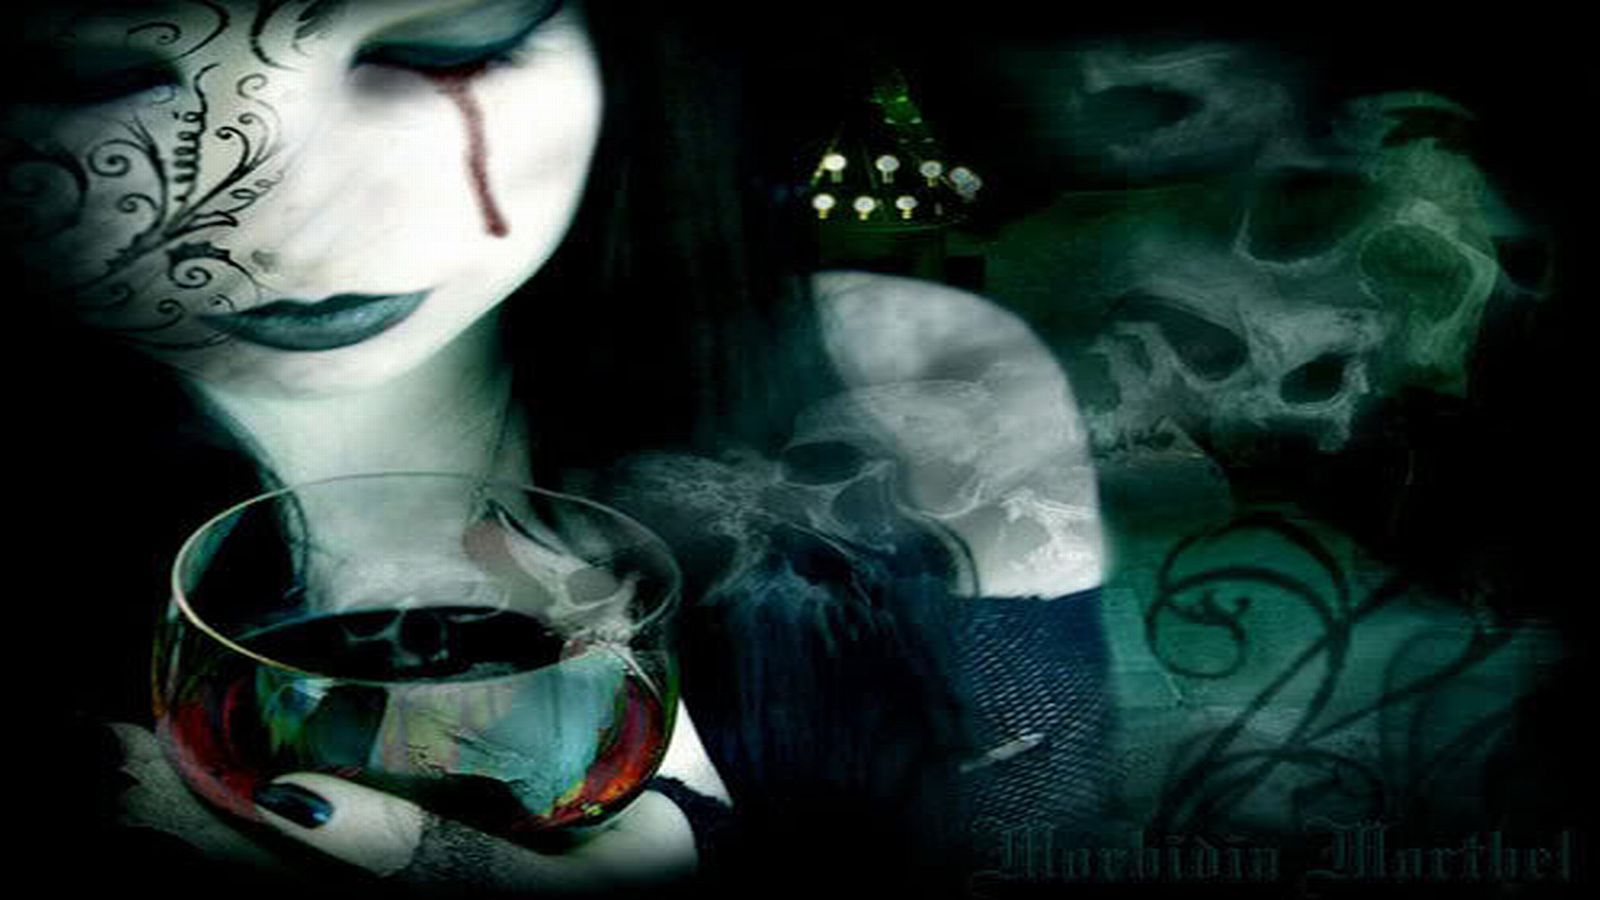 Dark Gothic Wallpaper 1600x900 Dark Gothic 1600x900